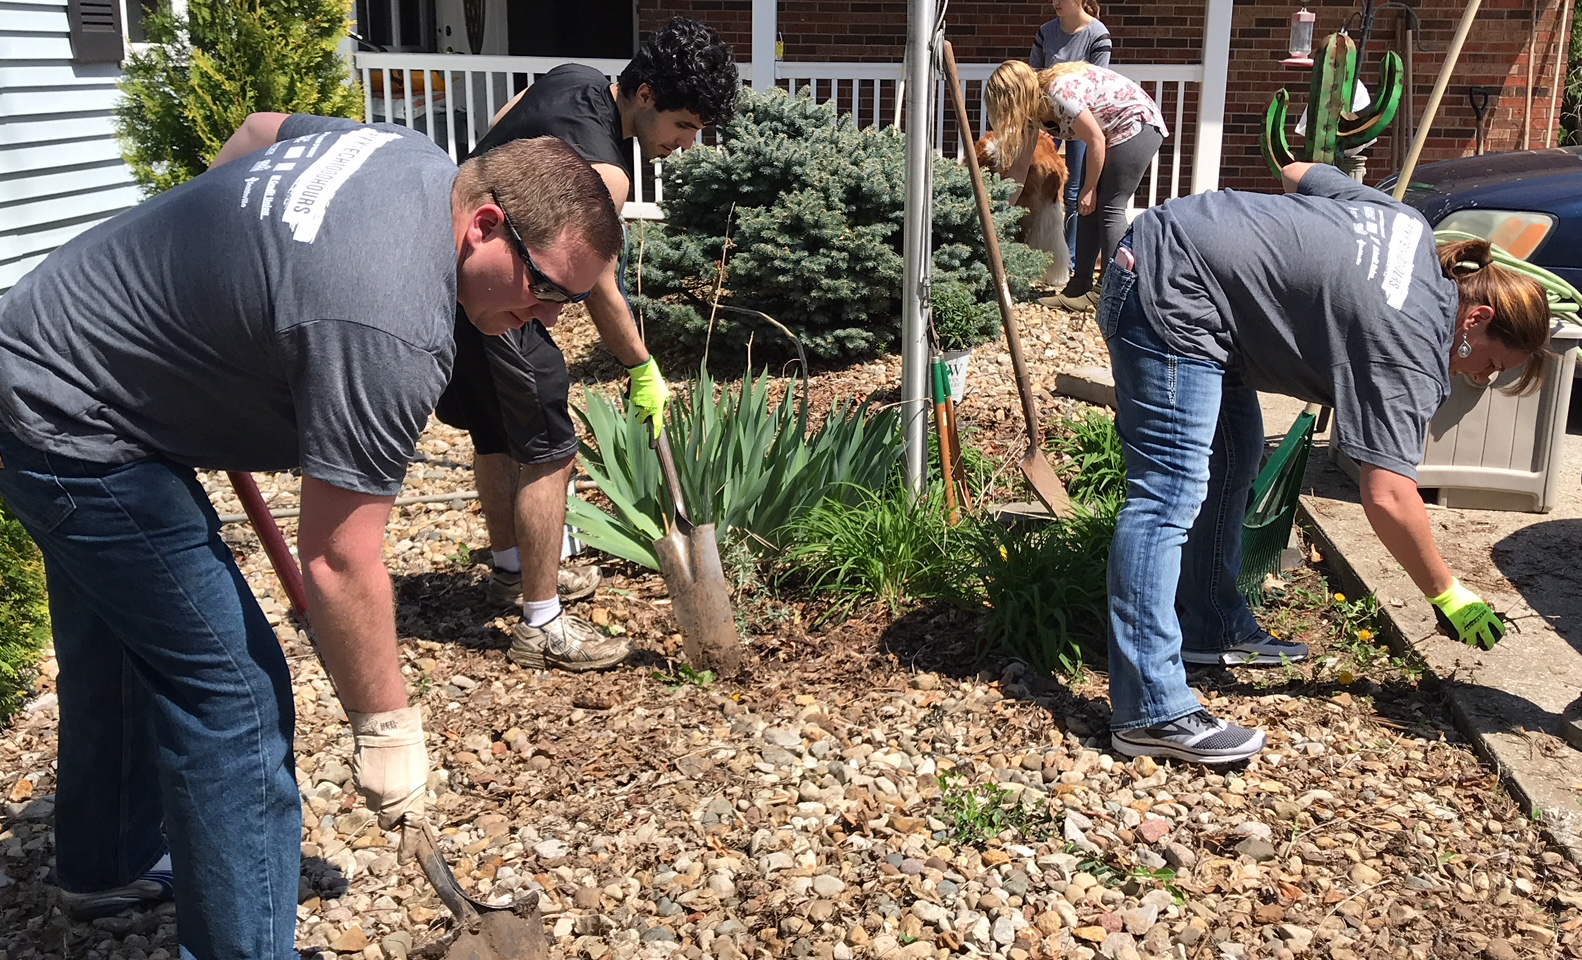 Volunteers in matching shirts use shovels and hand tools to clean up mulch and landscaping at a group home.